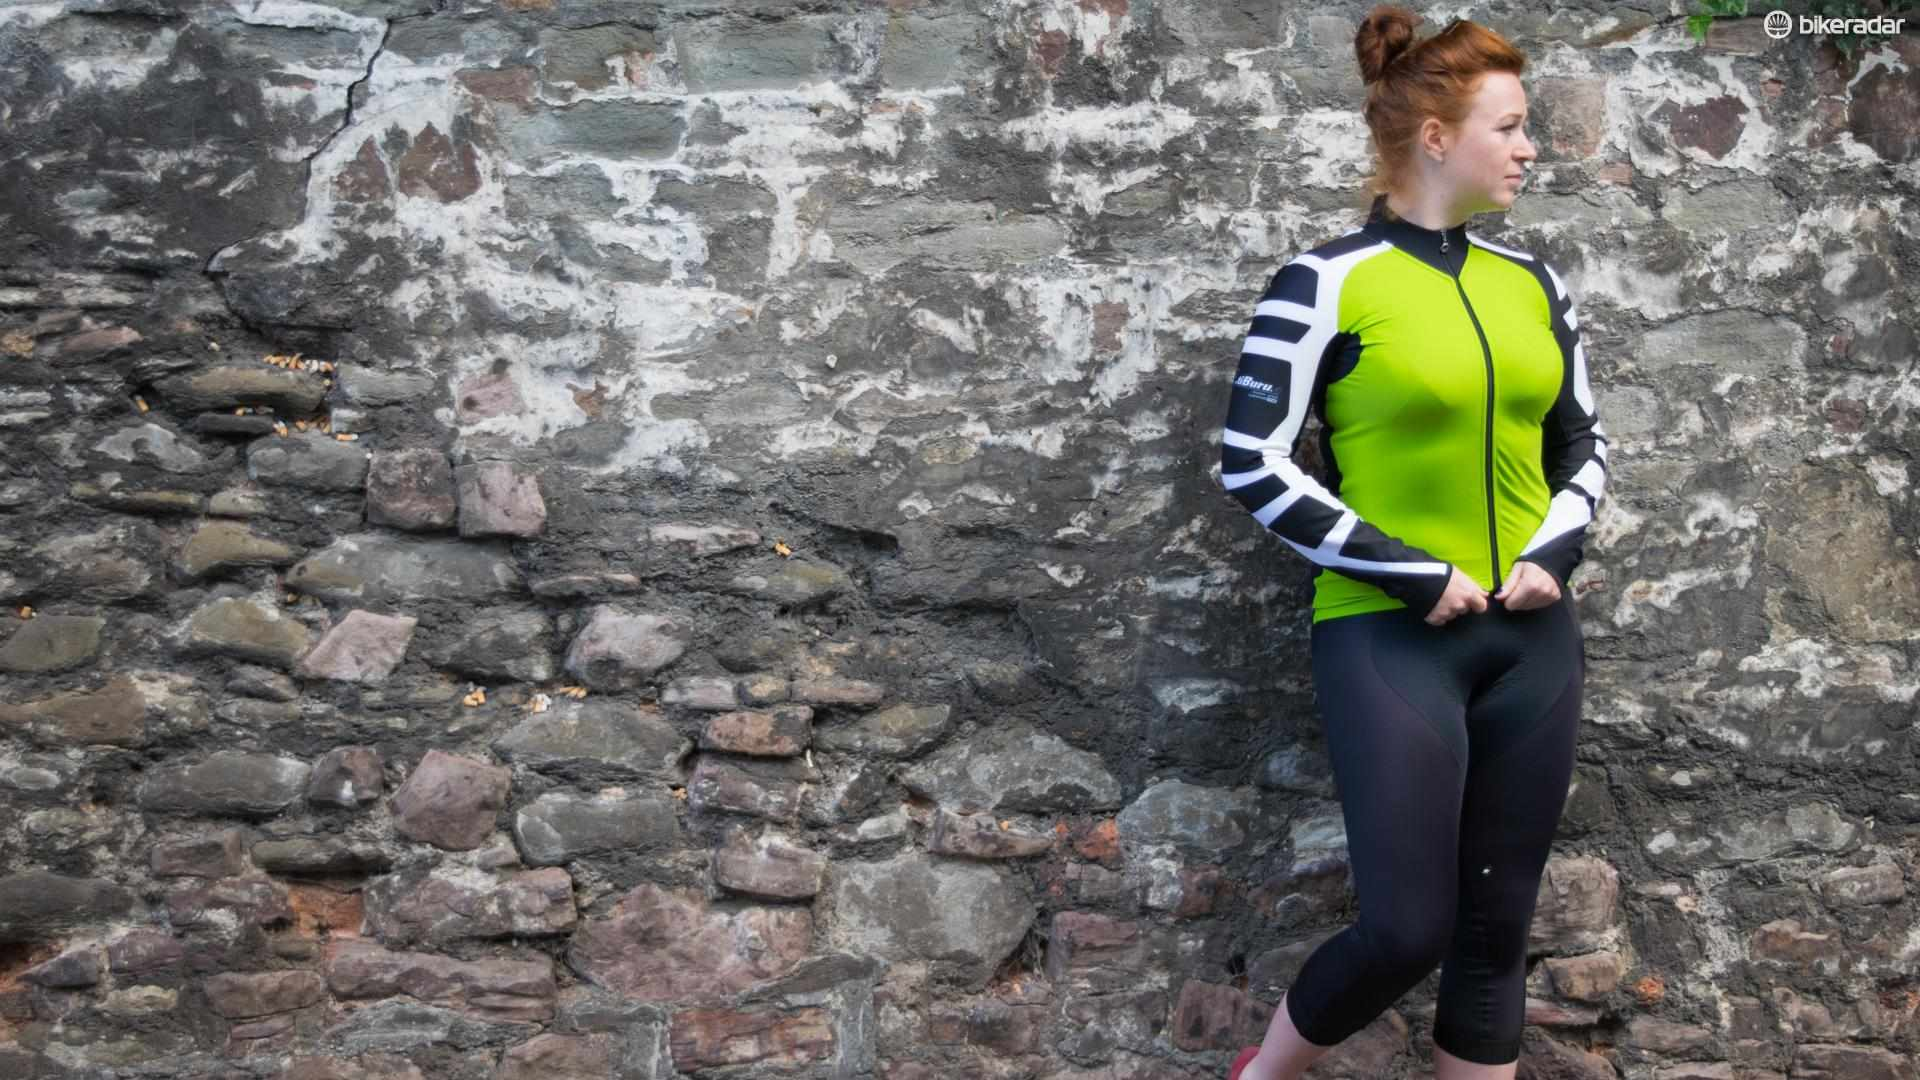 The Assos iJ.tiburu.4 jacket and women's hK.434.Lady knickers. The names don't exactly trip off the tongue, do they?